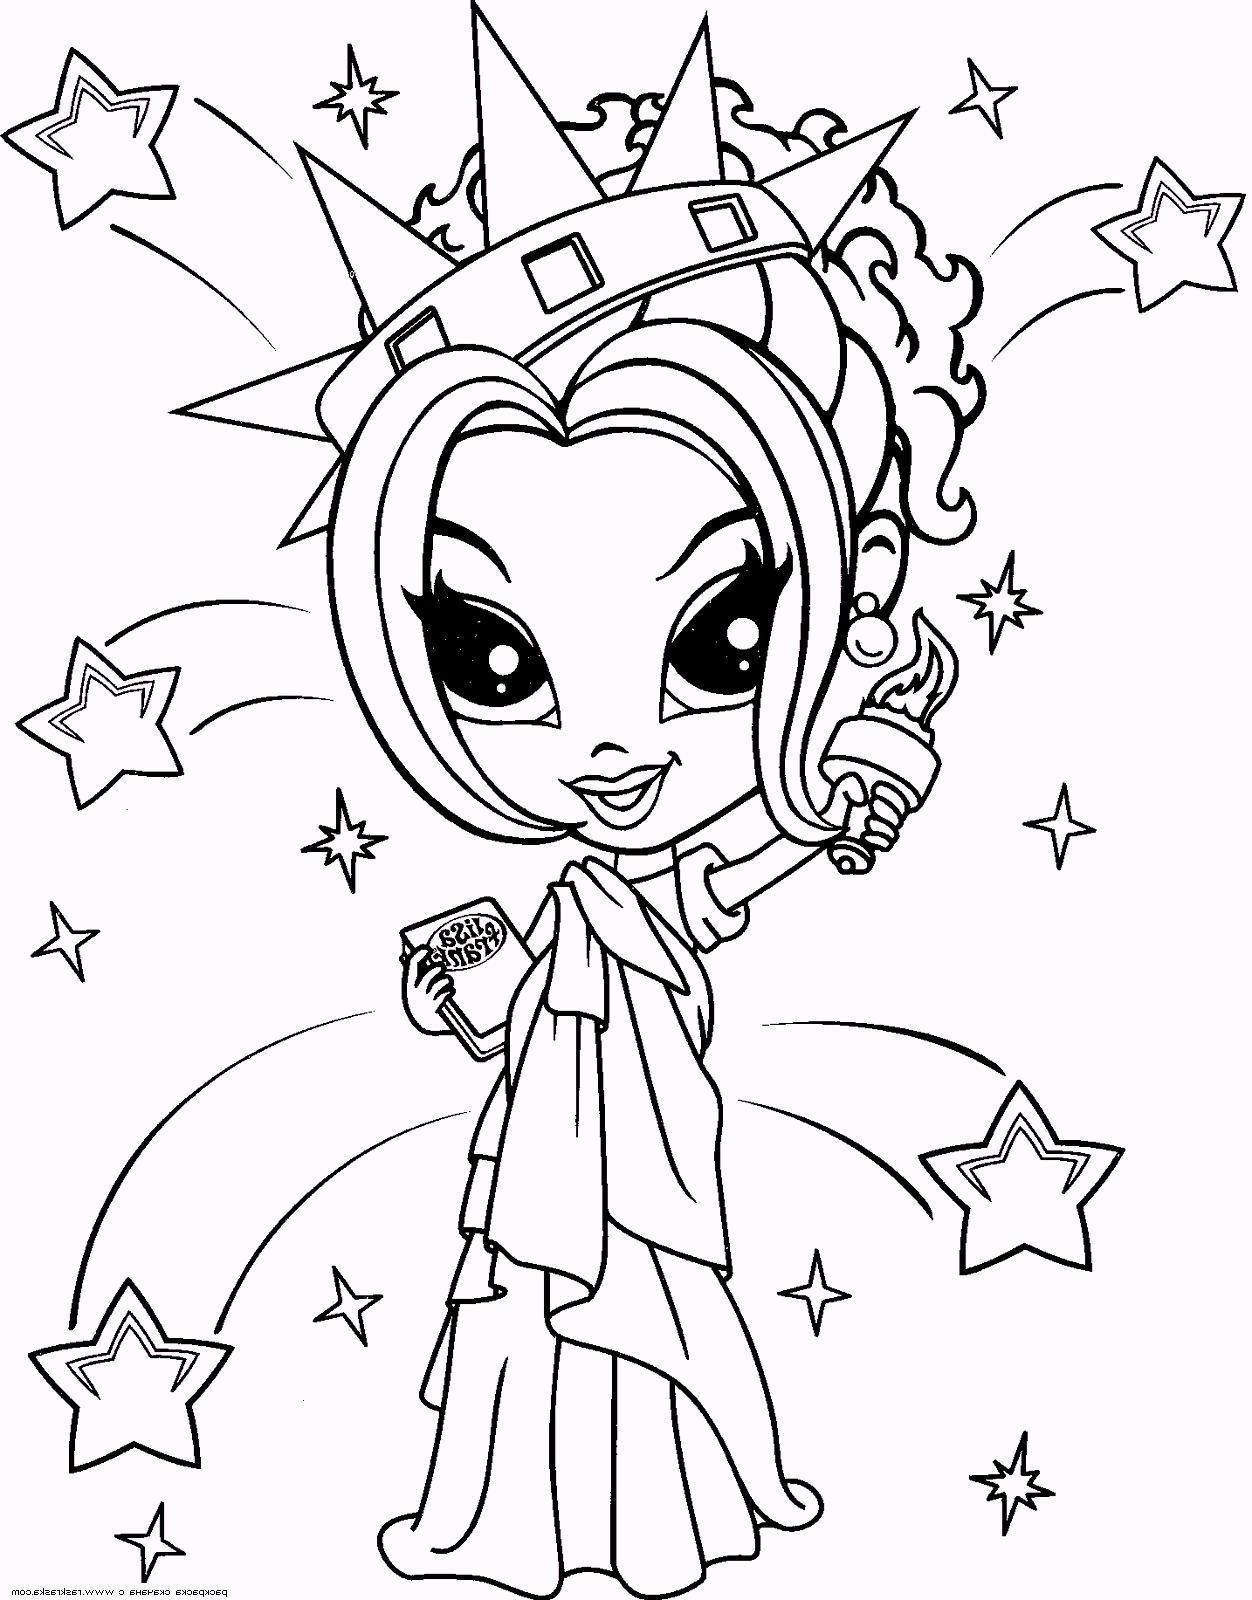 lisa-frank-coloring-pages-02